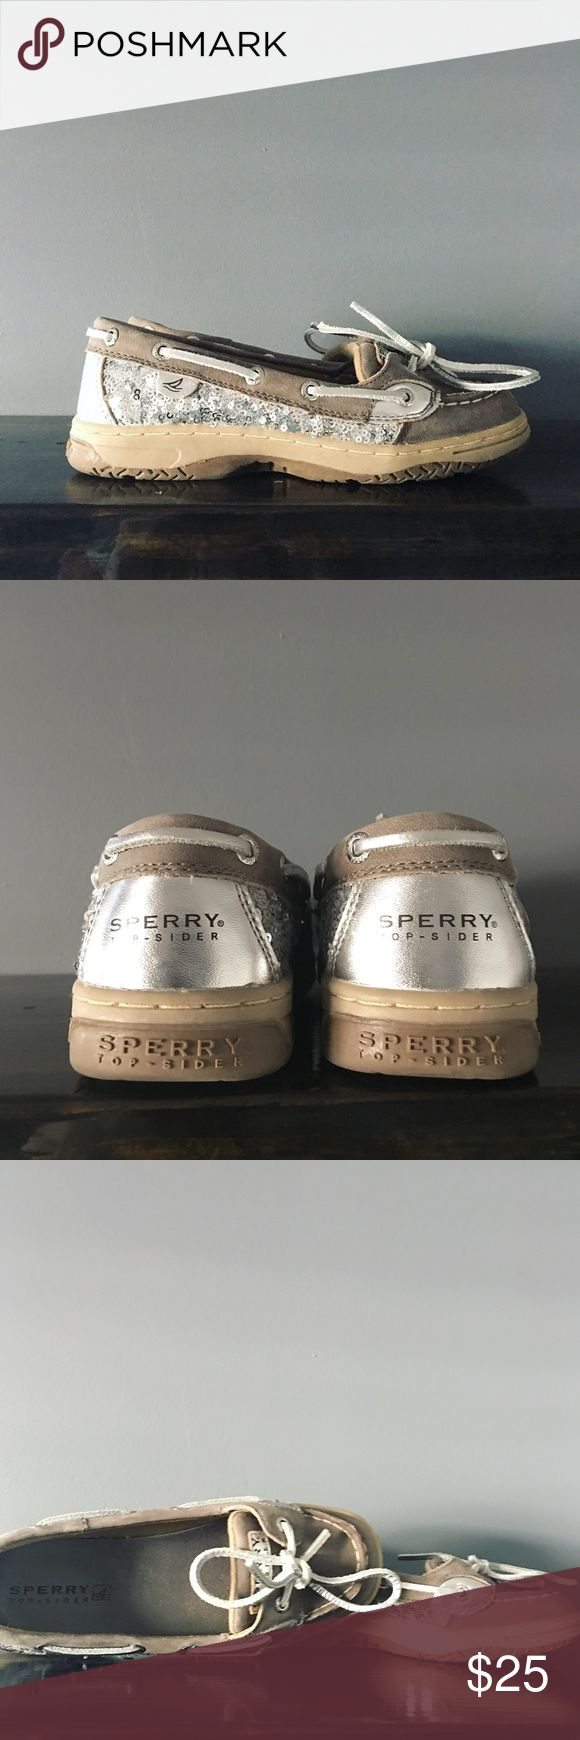 Sperry Top- Sider Shoes Sparkle and shine in these excellent condition Sperry shoes!! Sperry Top-Sider Shoes